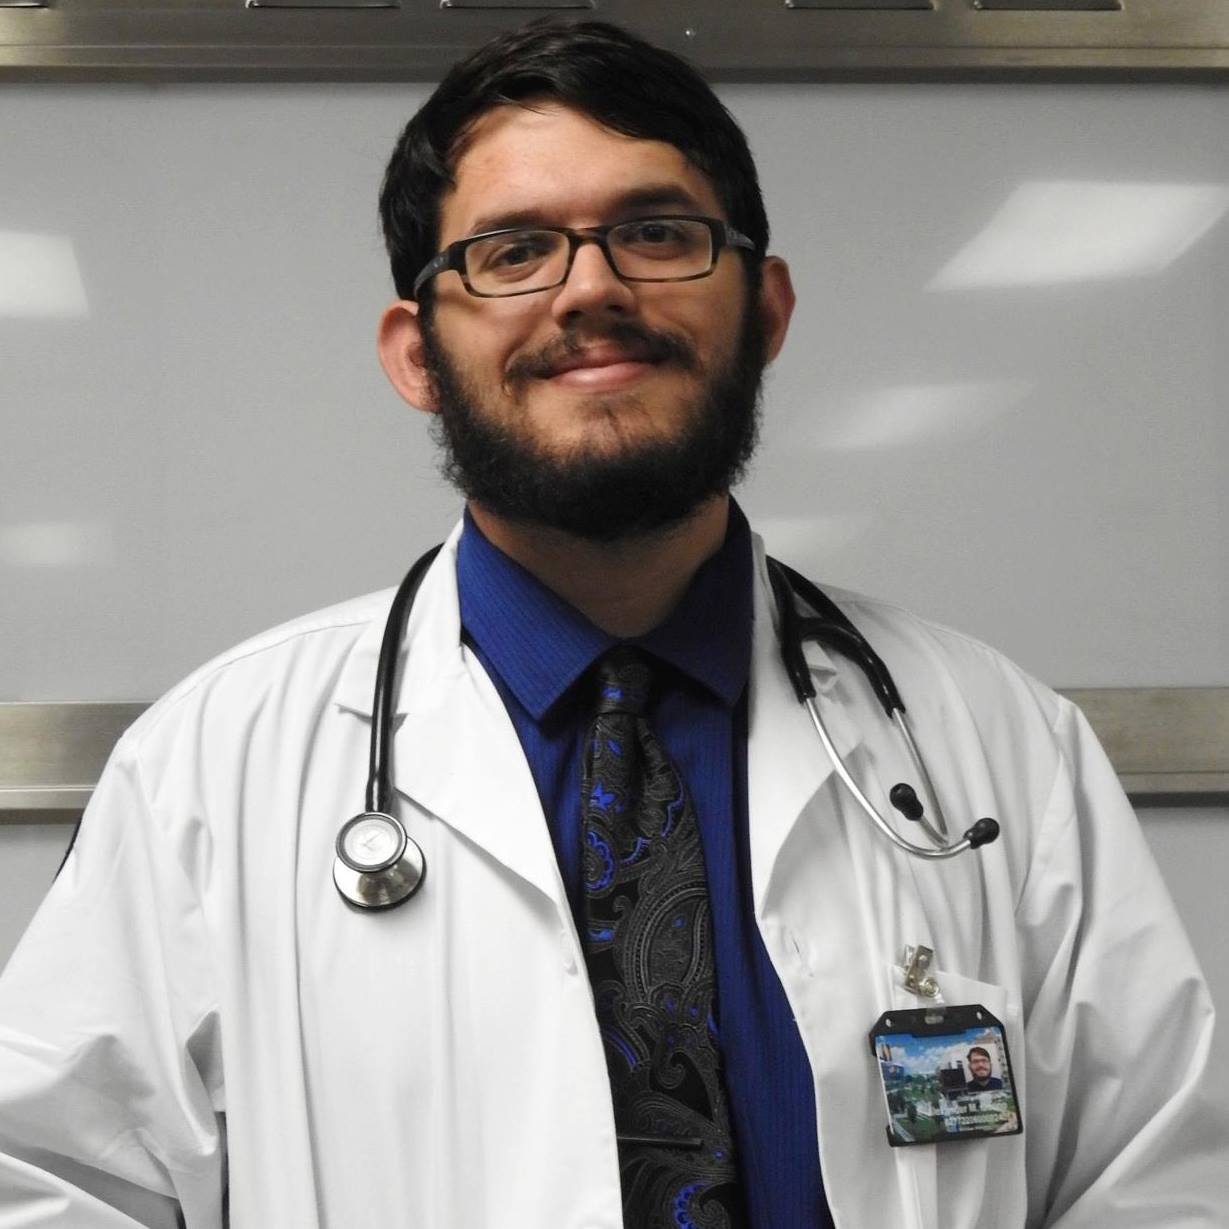 Med School Reflections & Advice With MS3 Alex Iacono